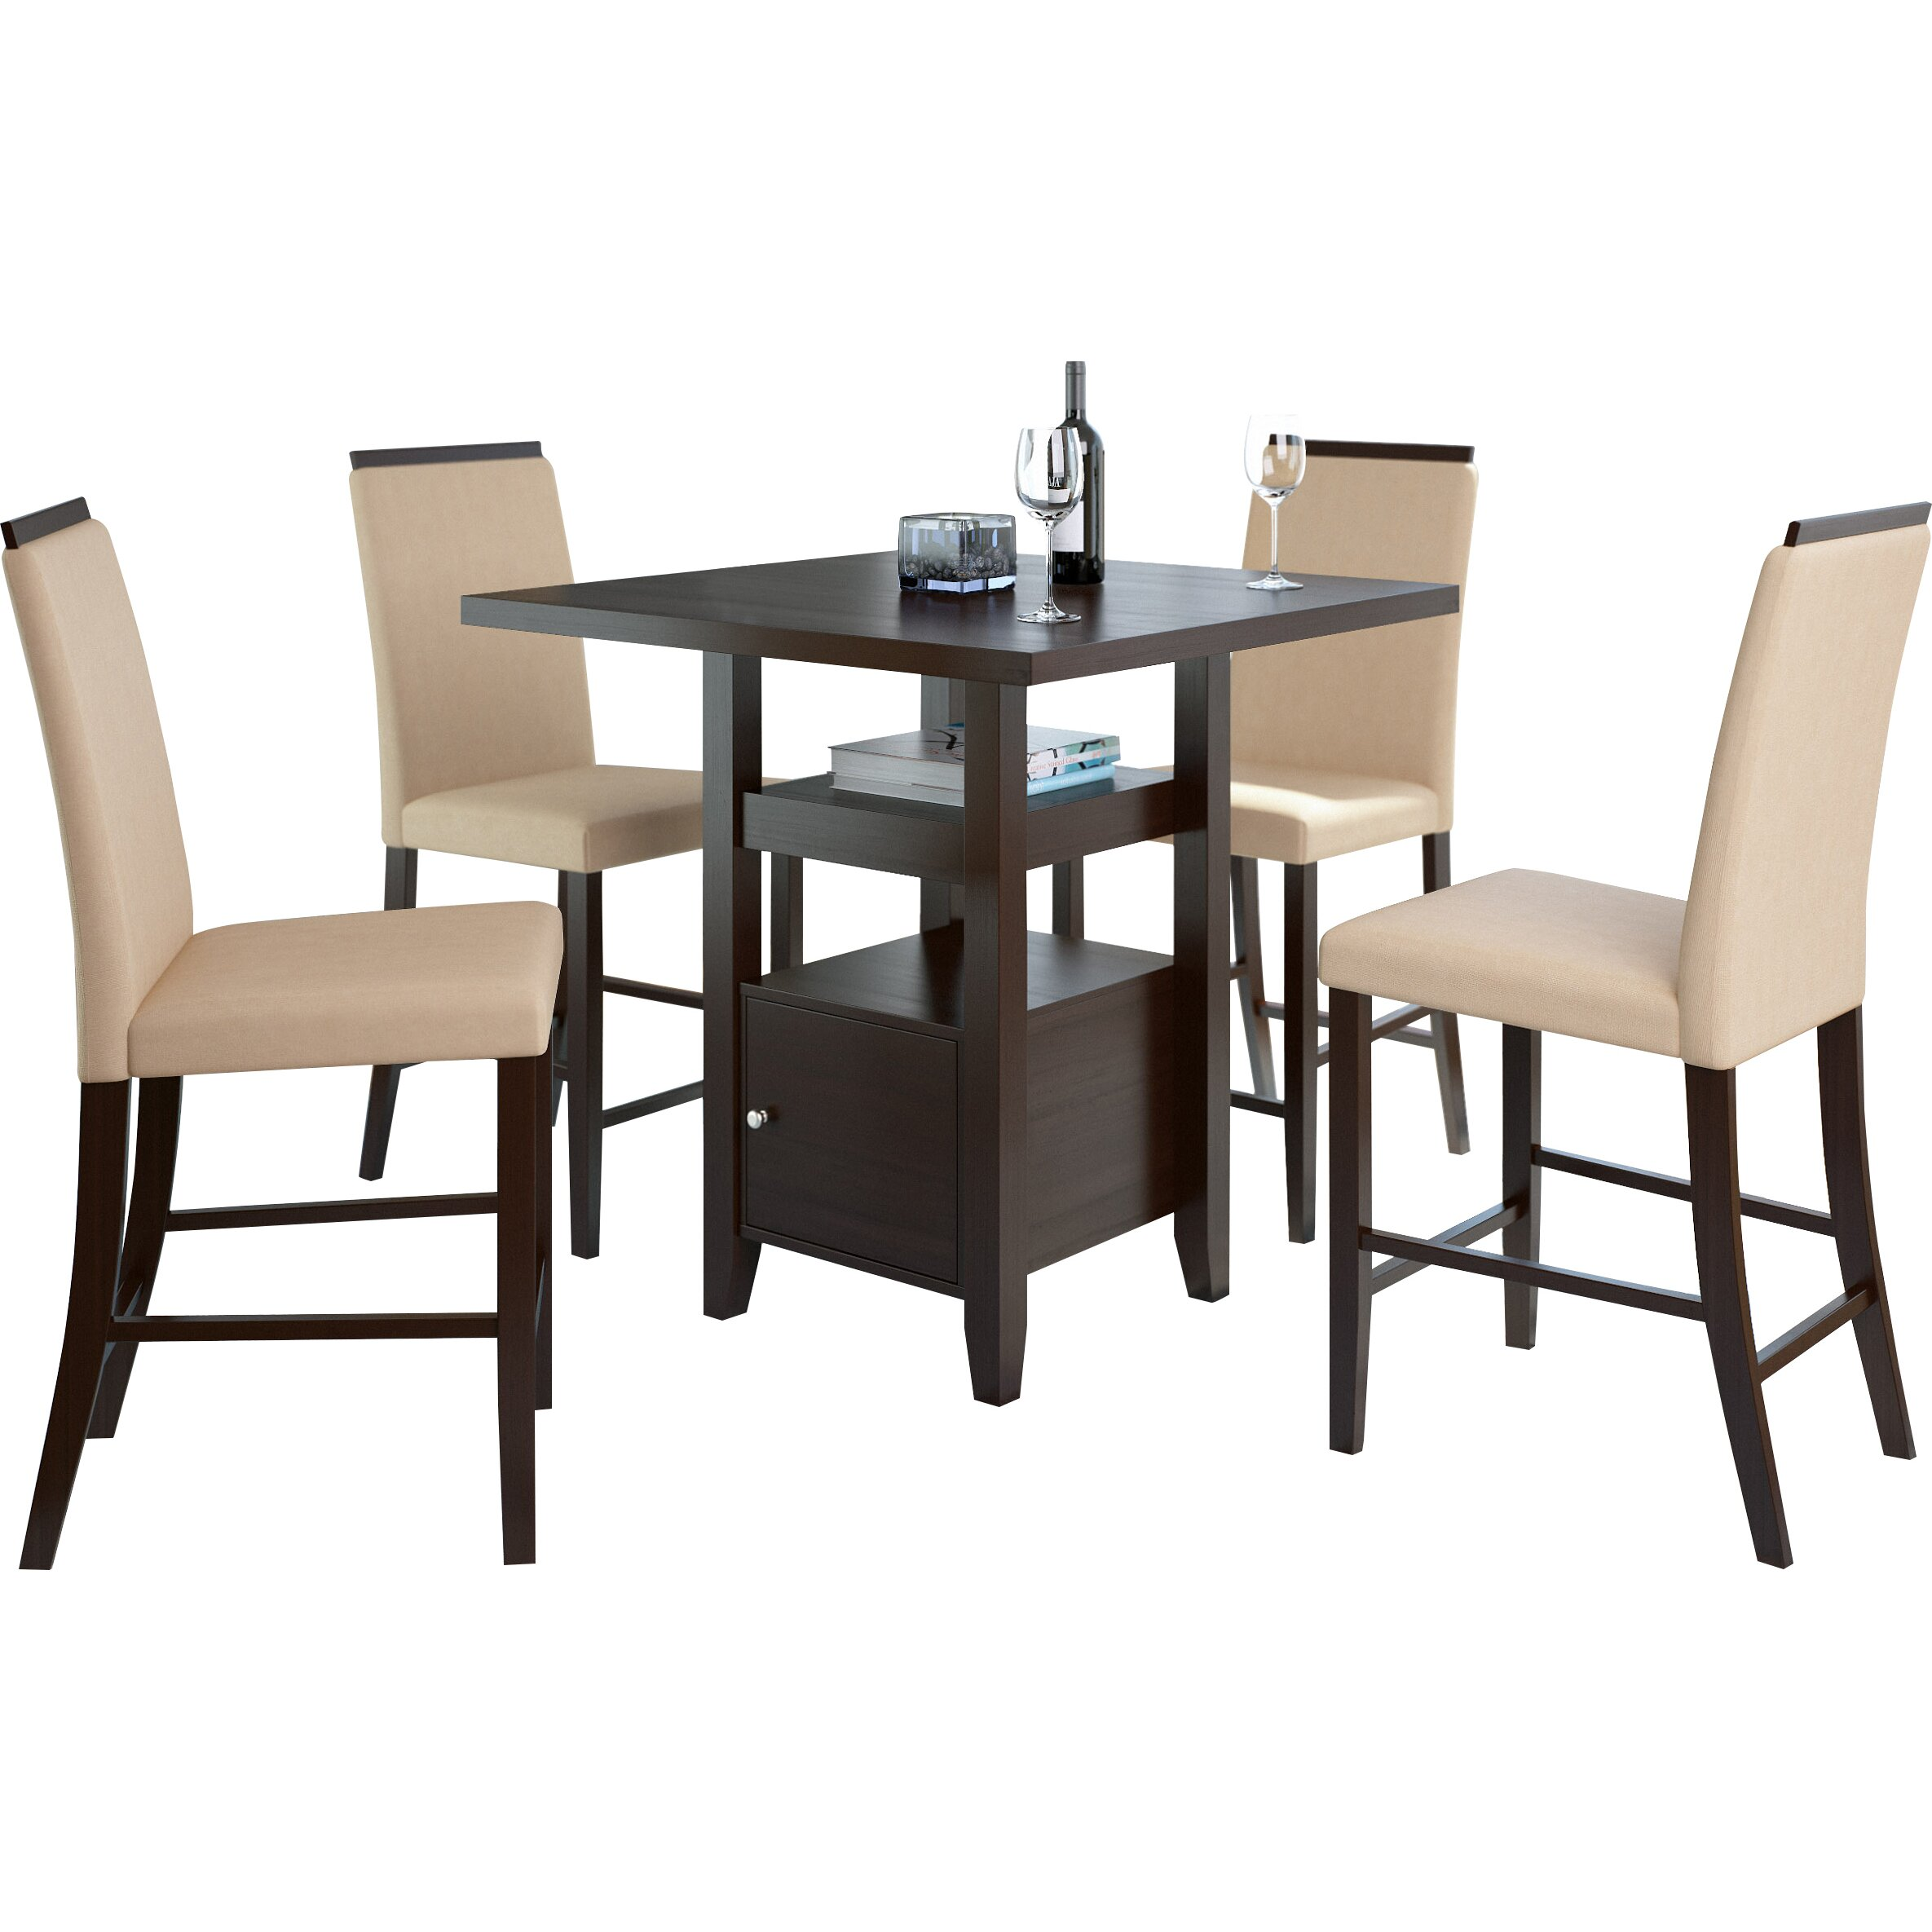 Red Dining Set: Red Barrel Studio Burgess 5 Pieces Counter Height Dining